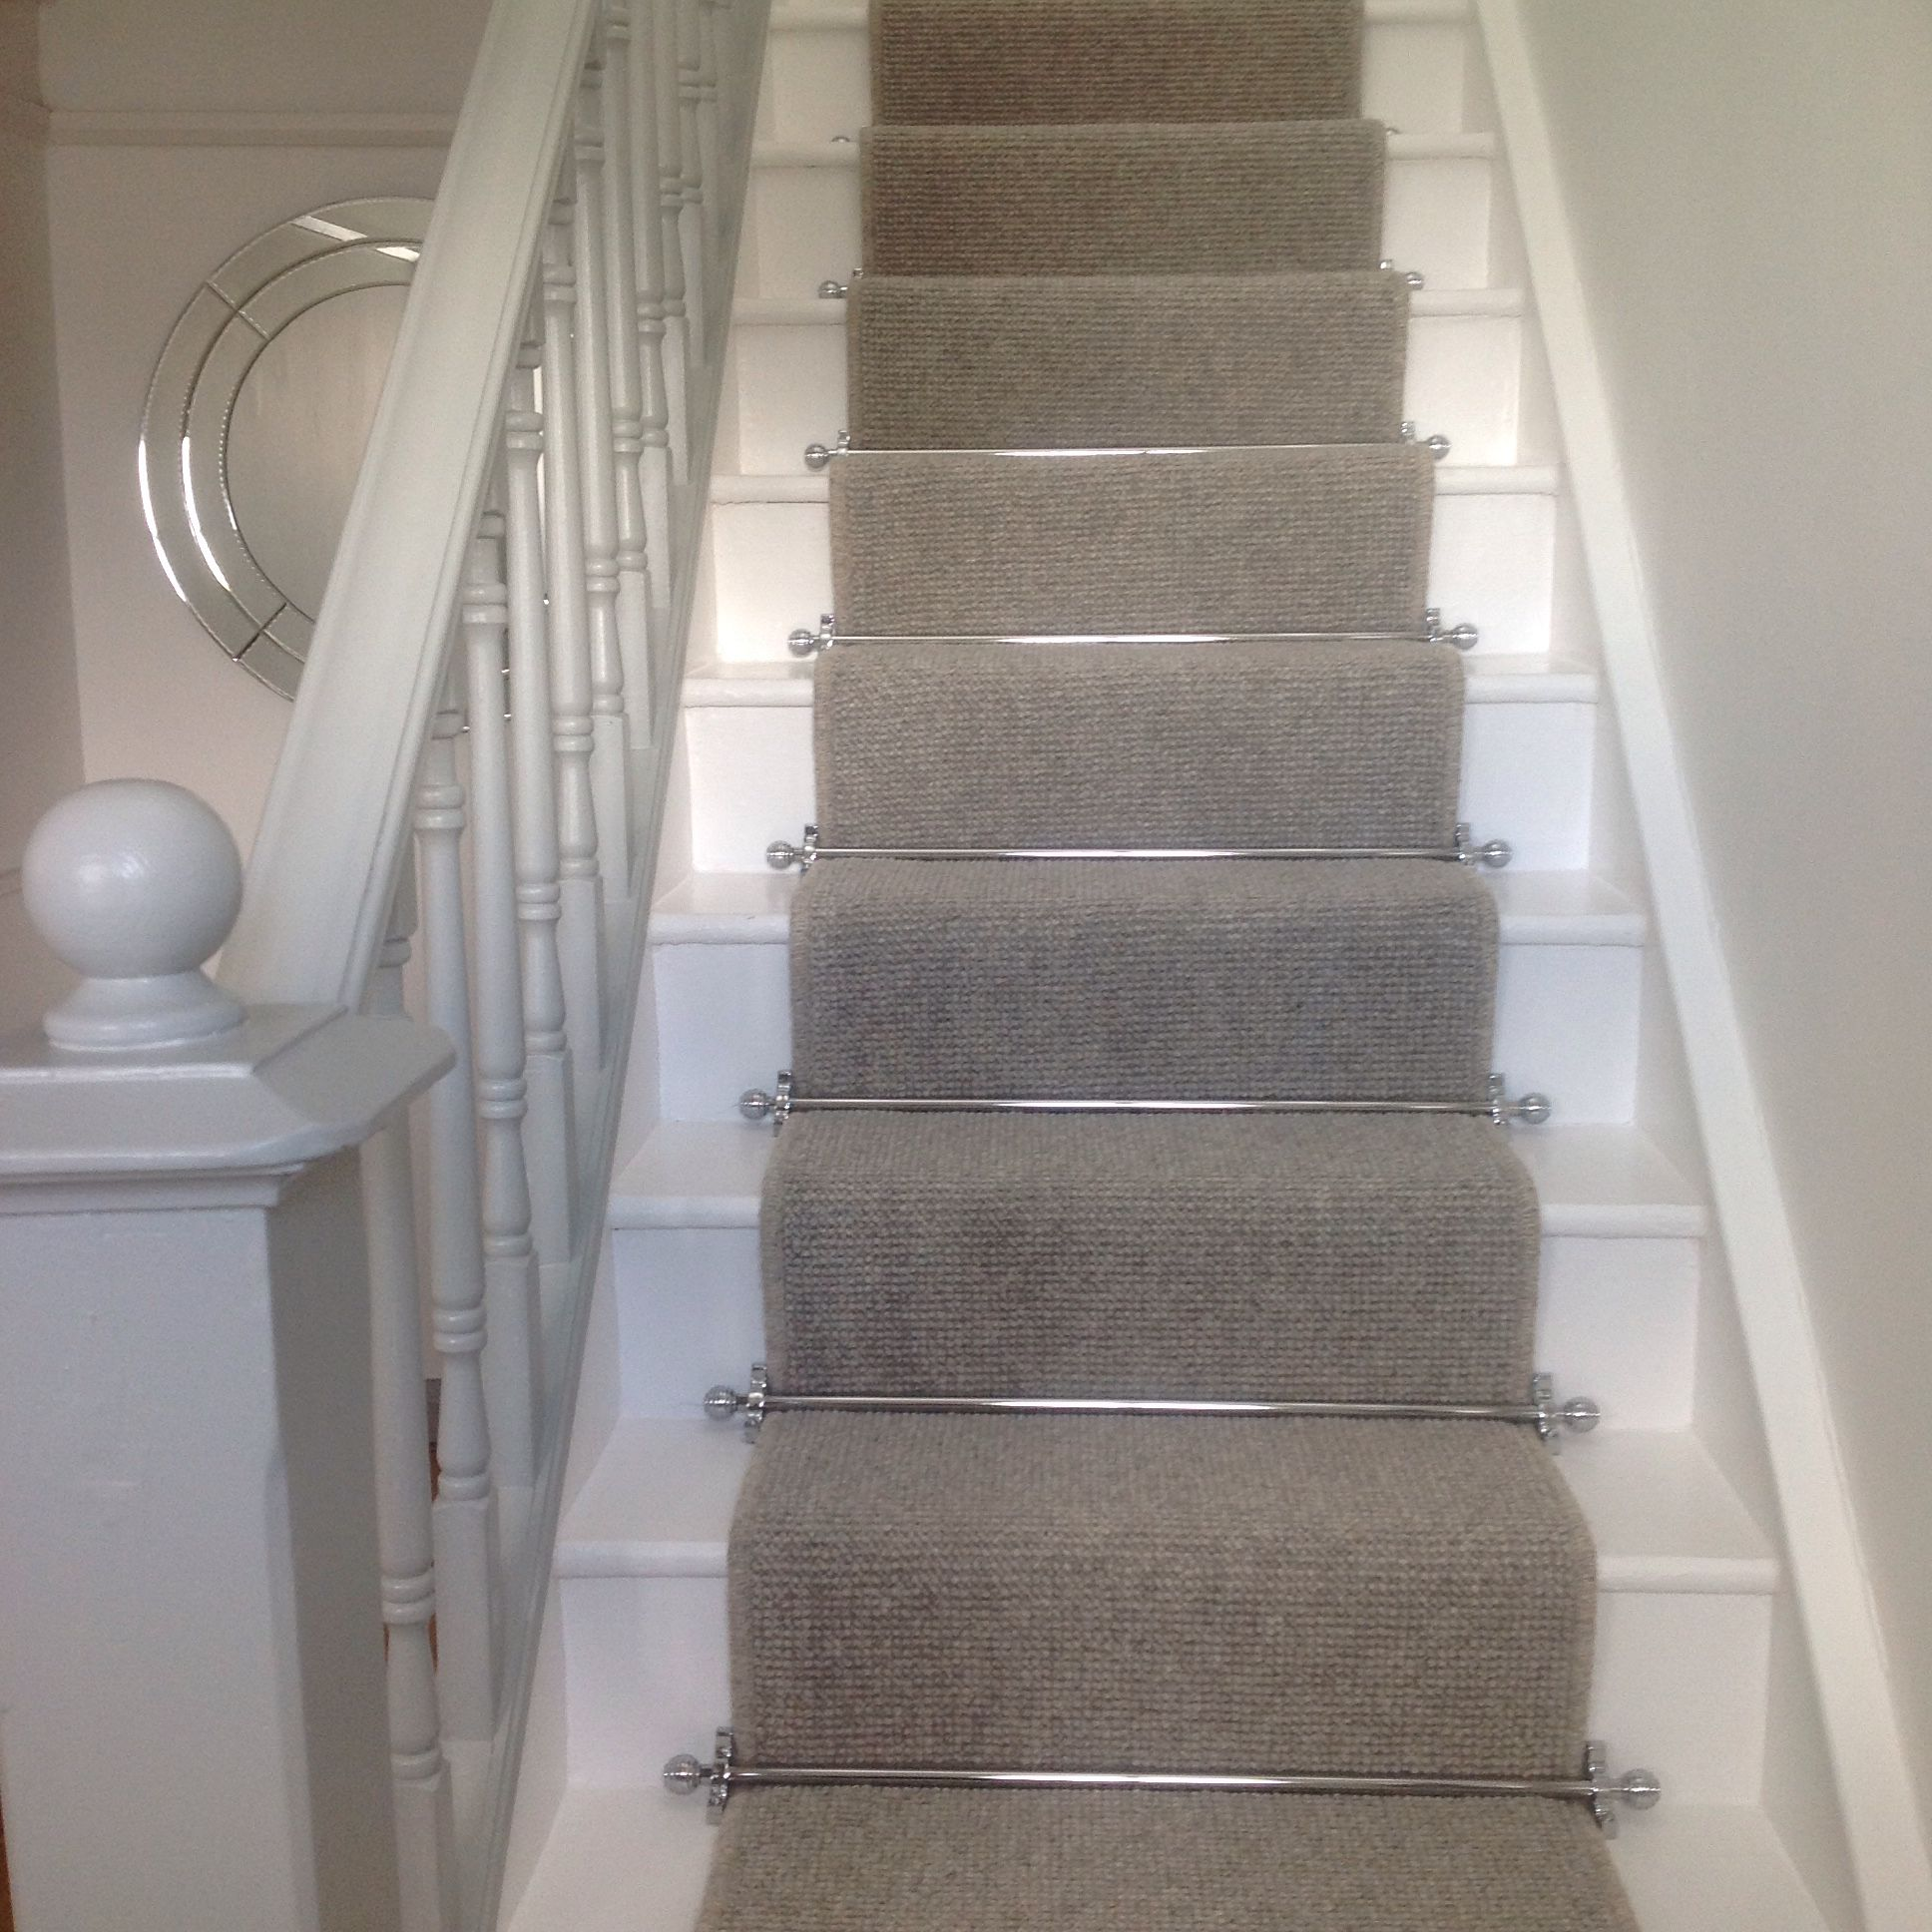 Runner On Stairs With Grey Carpet With Chrome Bars Carpet | Painted Stairs With Carpet | Middle | Design | Diamond Pattern | Victorian | Laminate